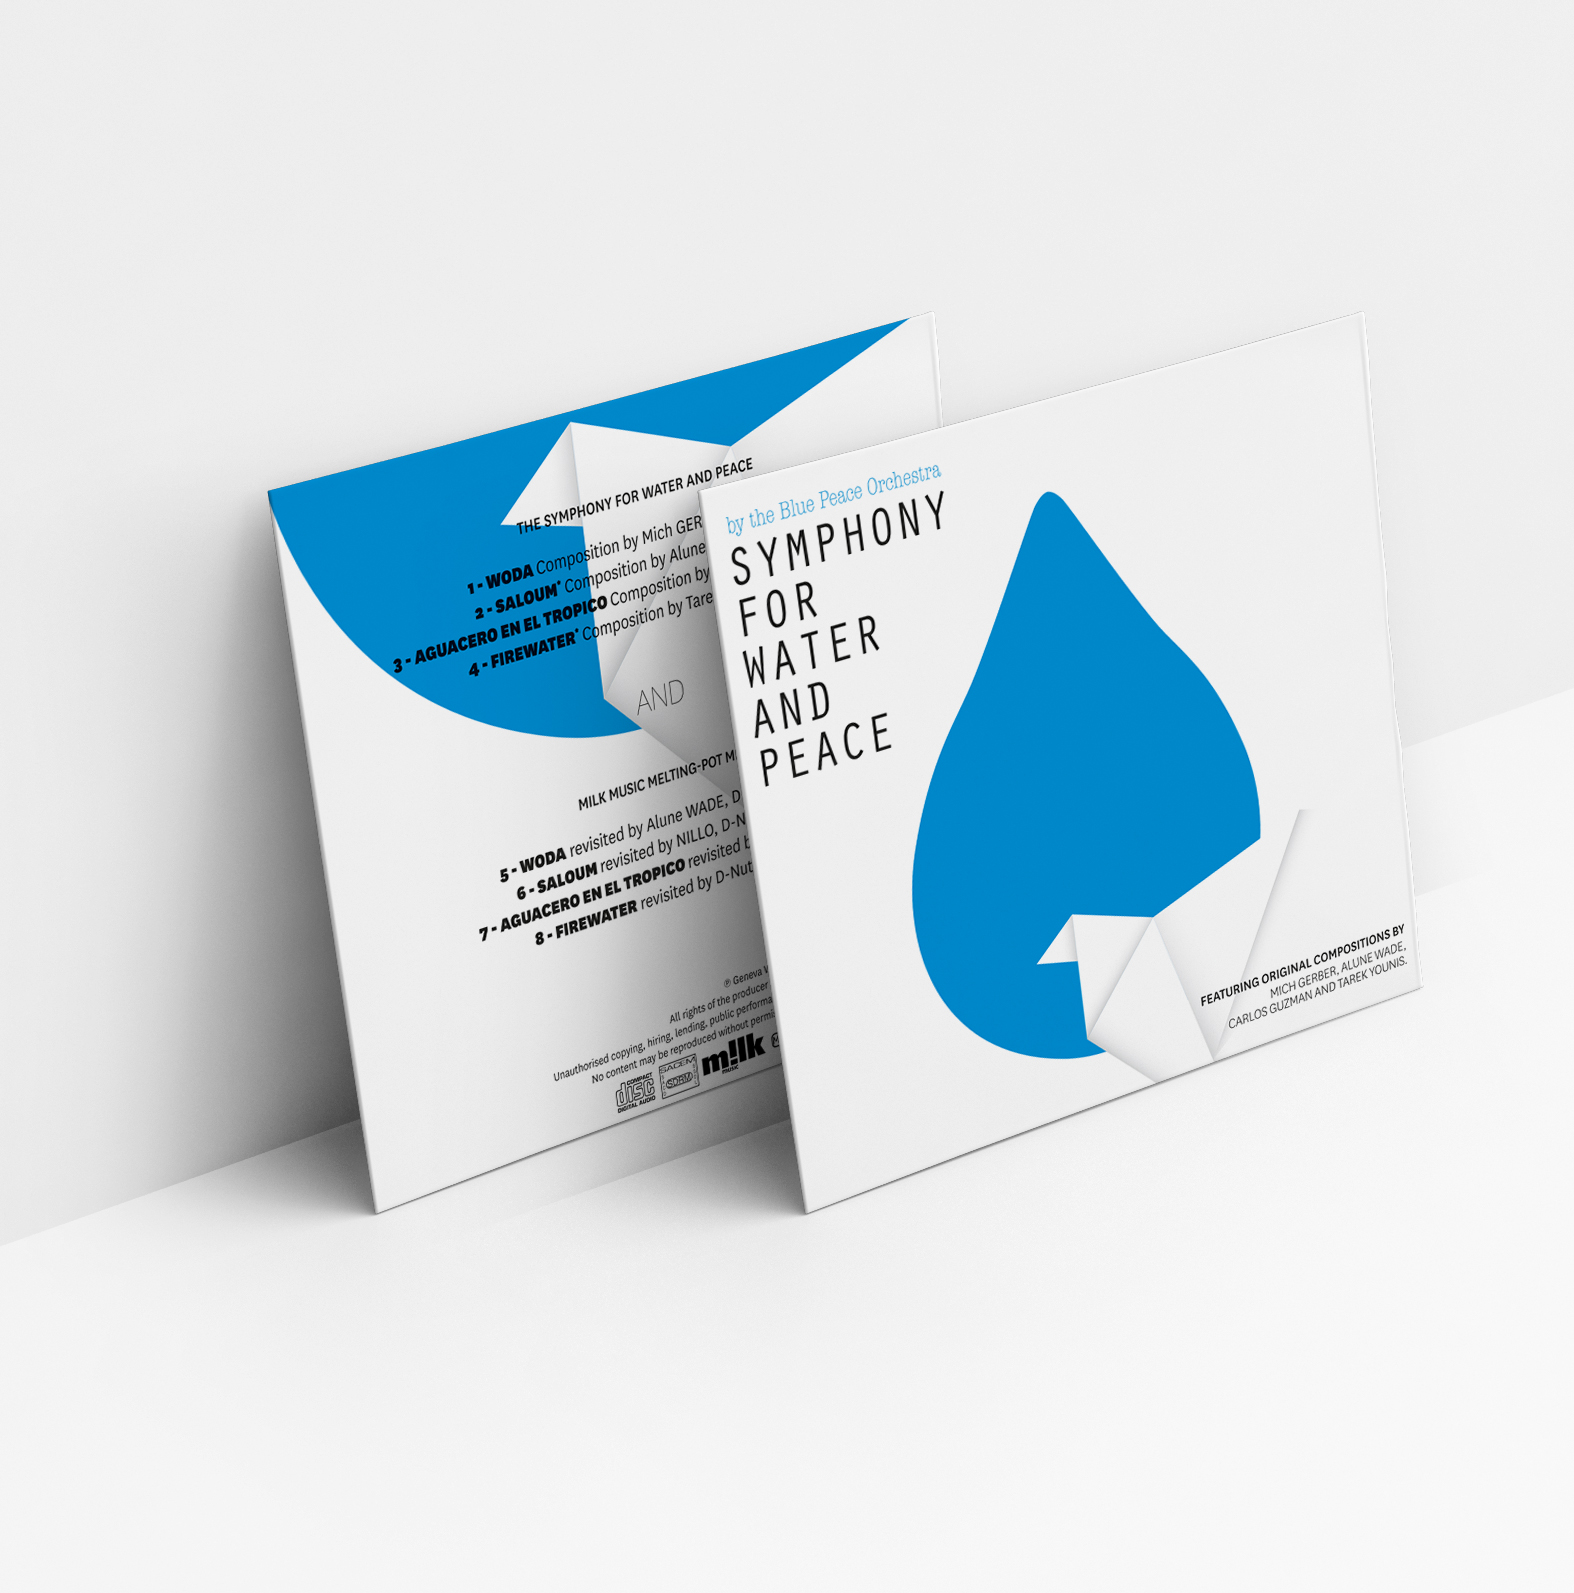 CD Symphonie for water and peace